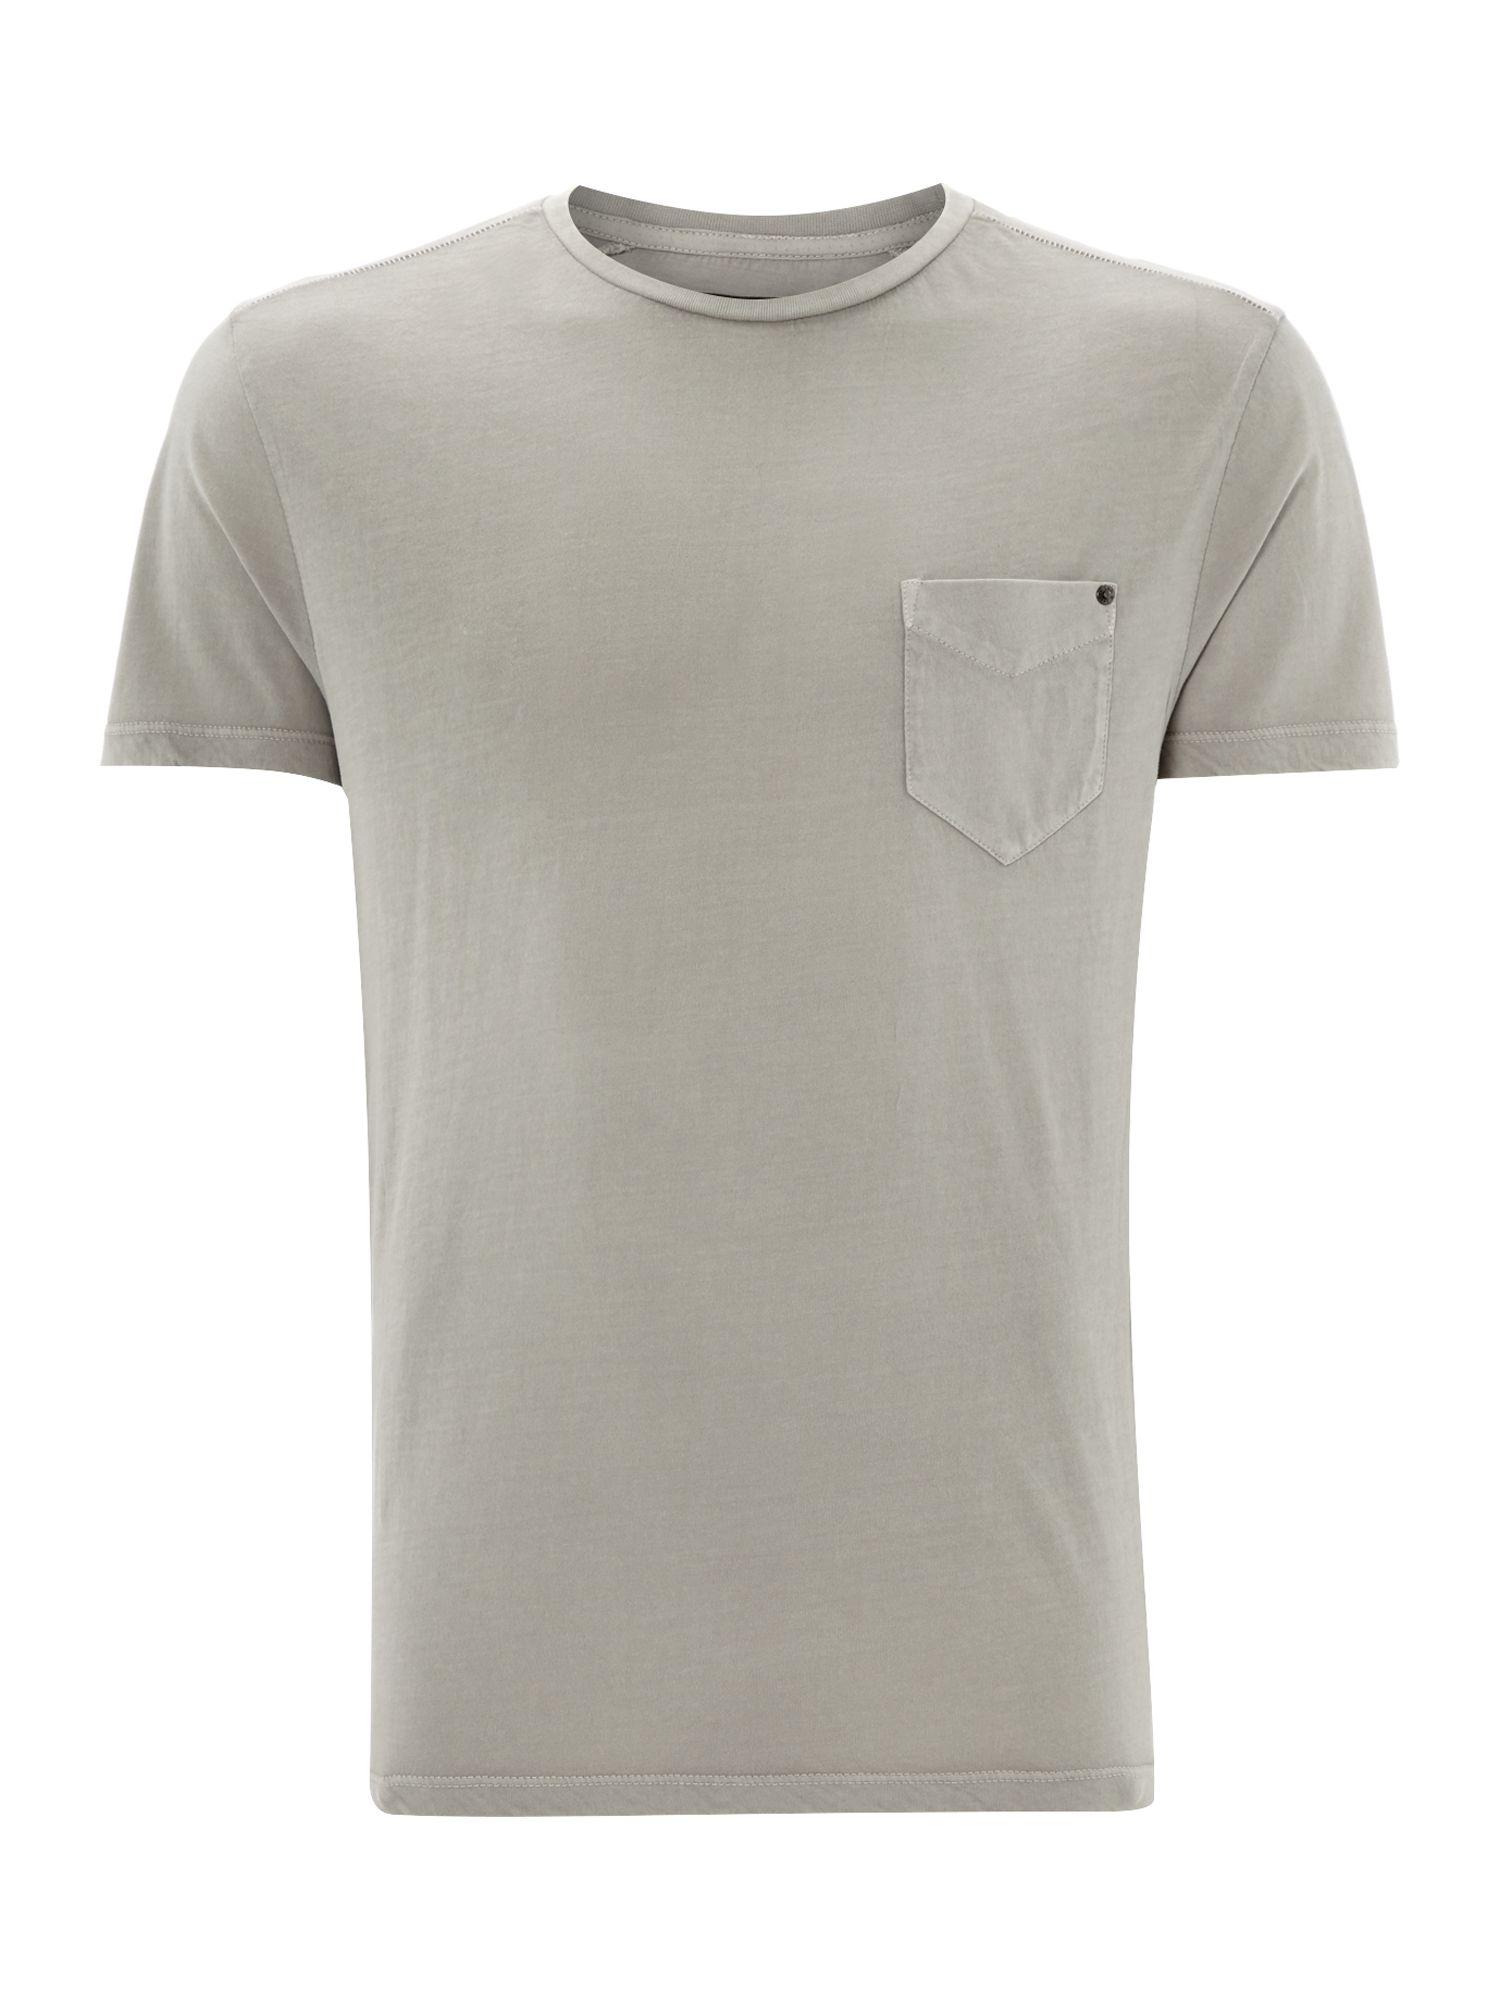 Jubilee one pocket t-shirt